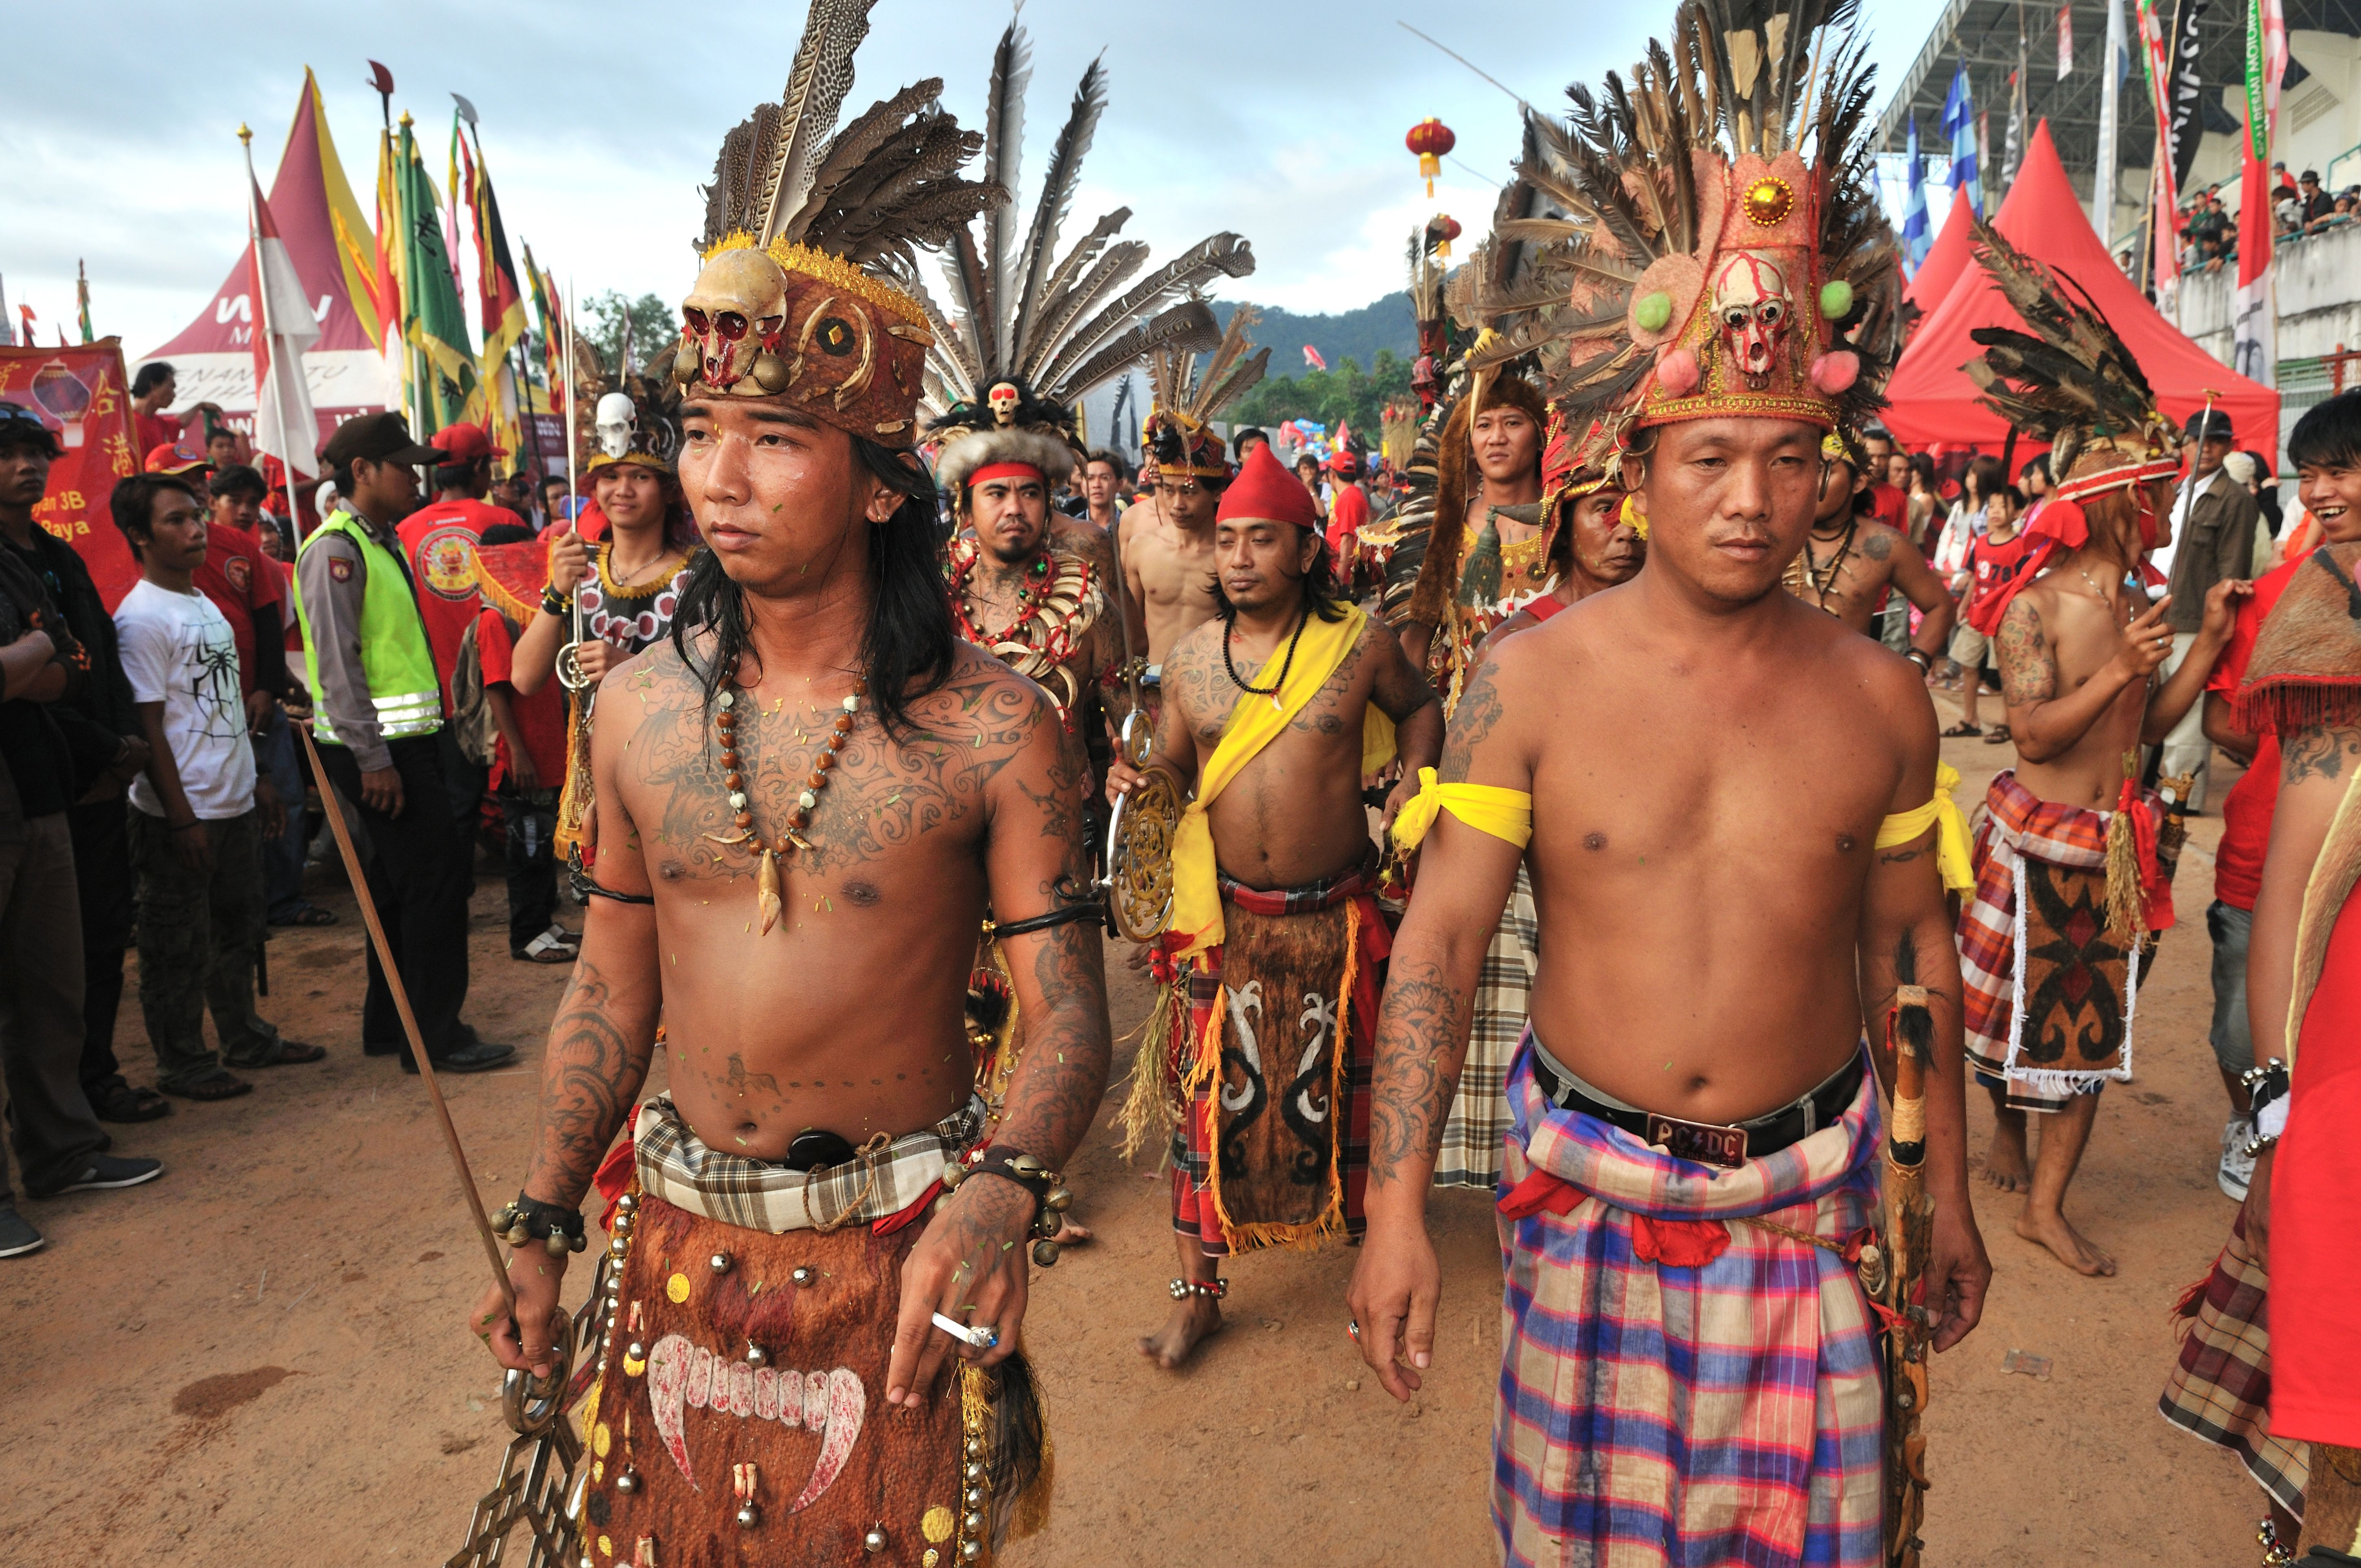 Dayak people in traditional dress in Borneo